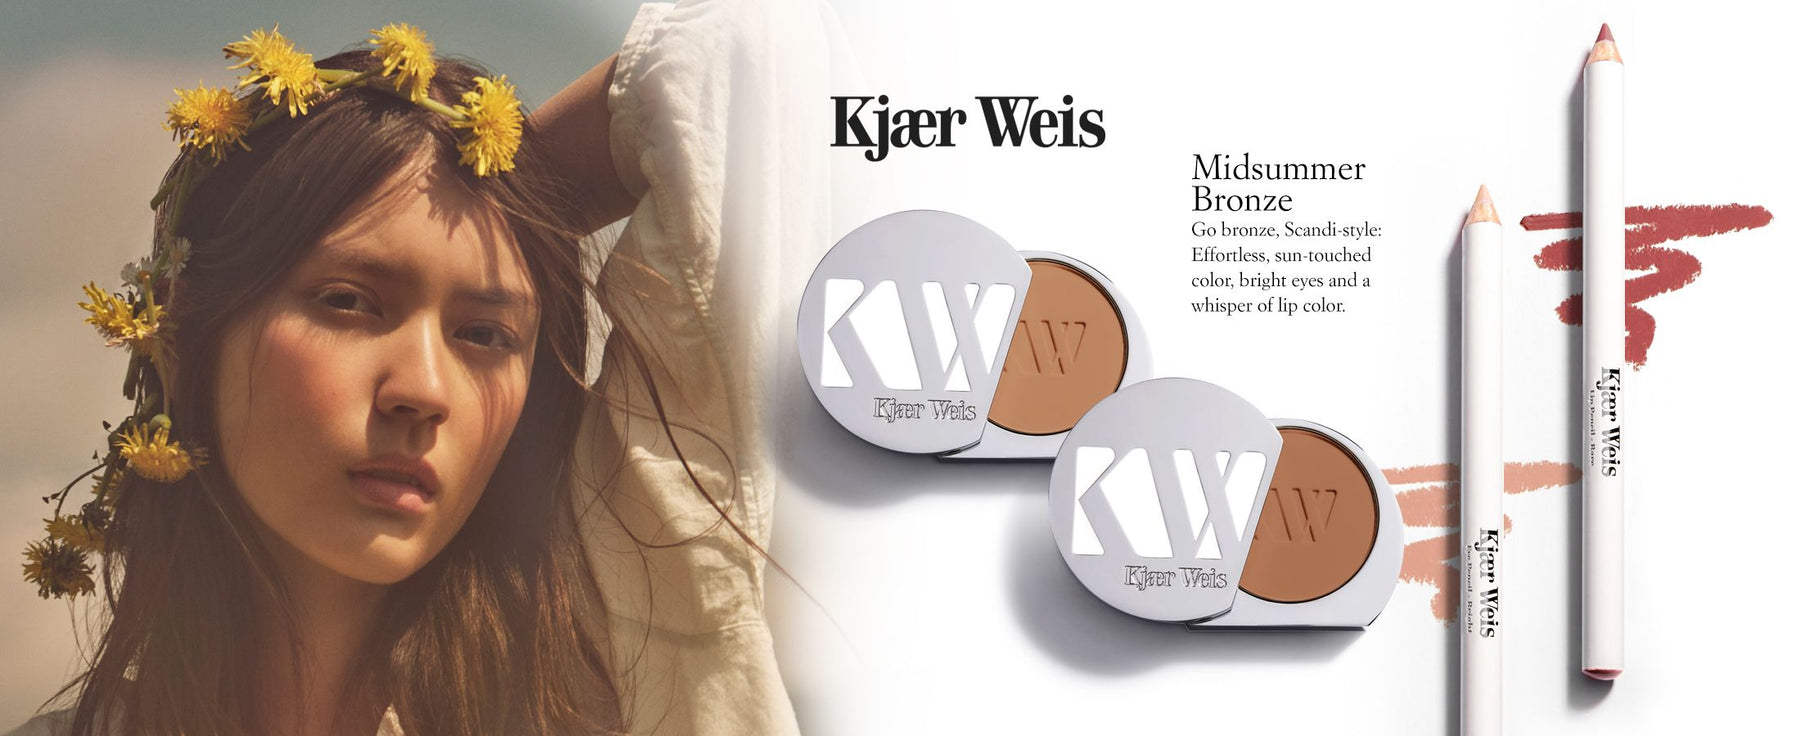 Kjaer Weis Midsummer Bronze Collection includes Powder Bronzers in Bask and Revel, Lip Pencil in Bare and Eye Pencil in Bright. Go bronze, Scandi-style: Effortless, sun-touched color, bright eyes and a whisper of lip color.